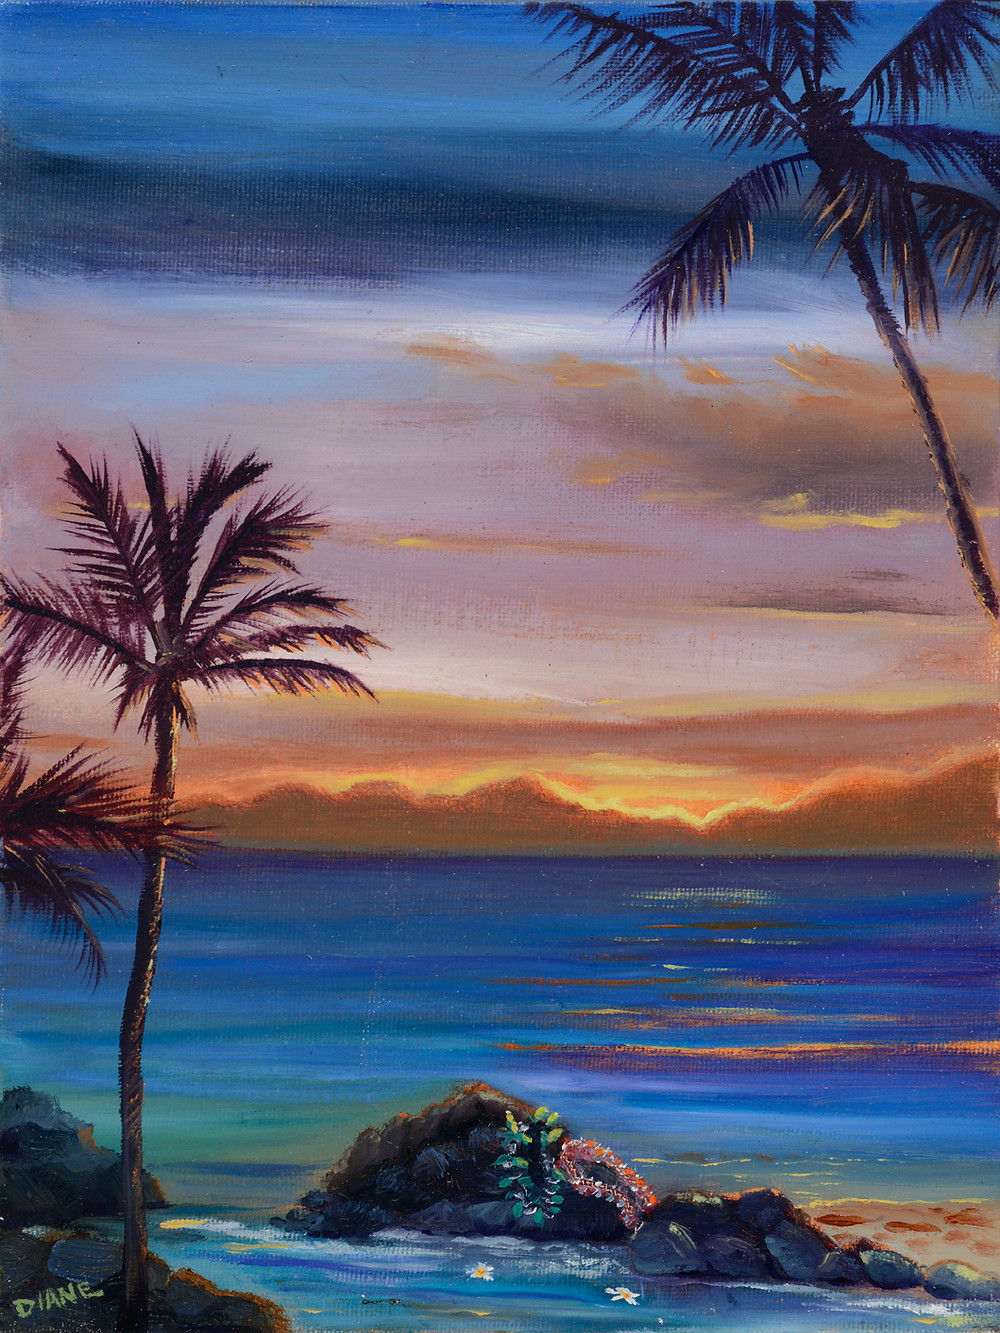 Just Maui'd completed